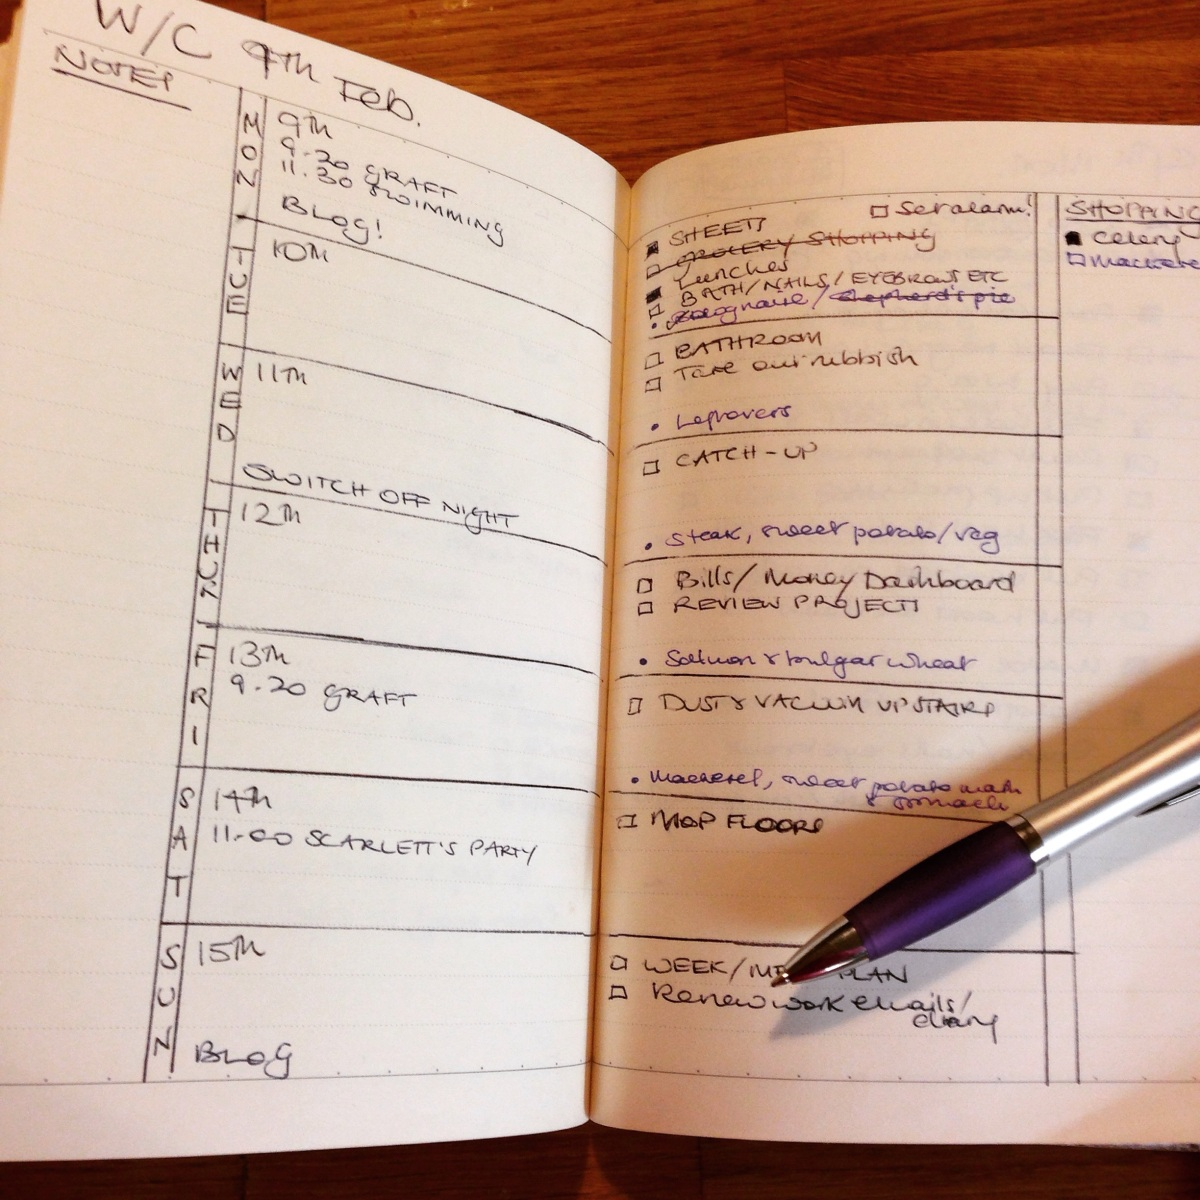 Bullet journal personalisation: make the system work for you